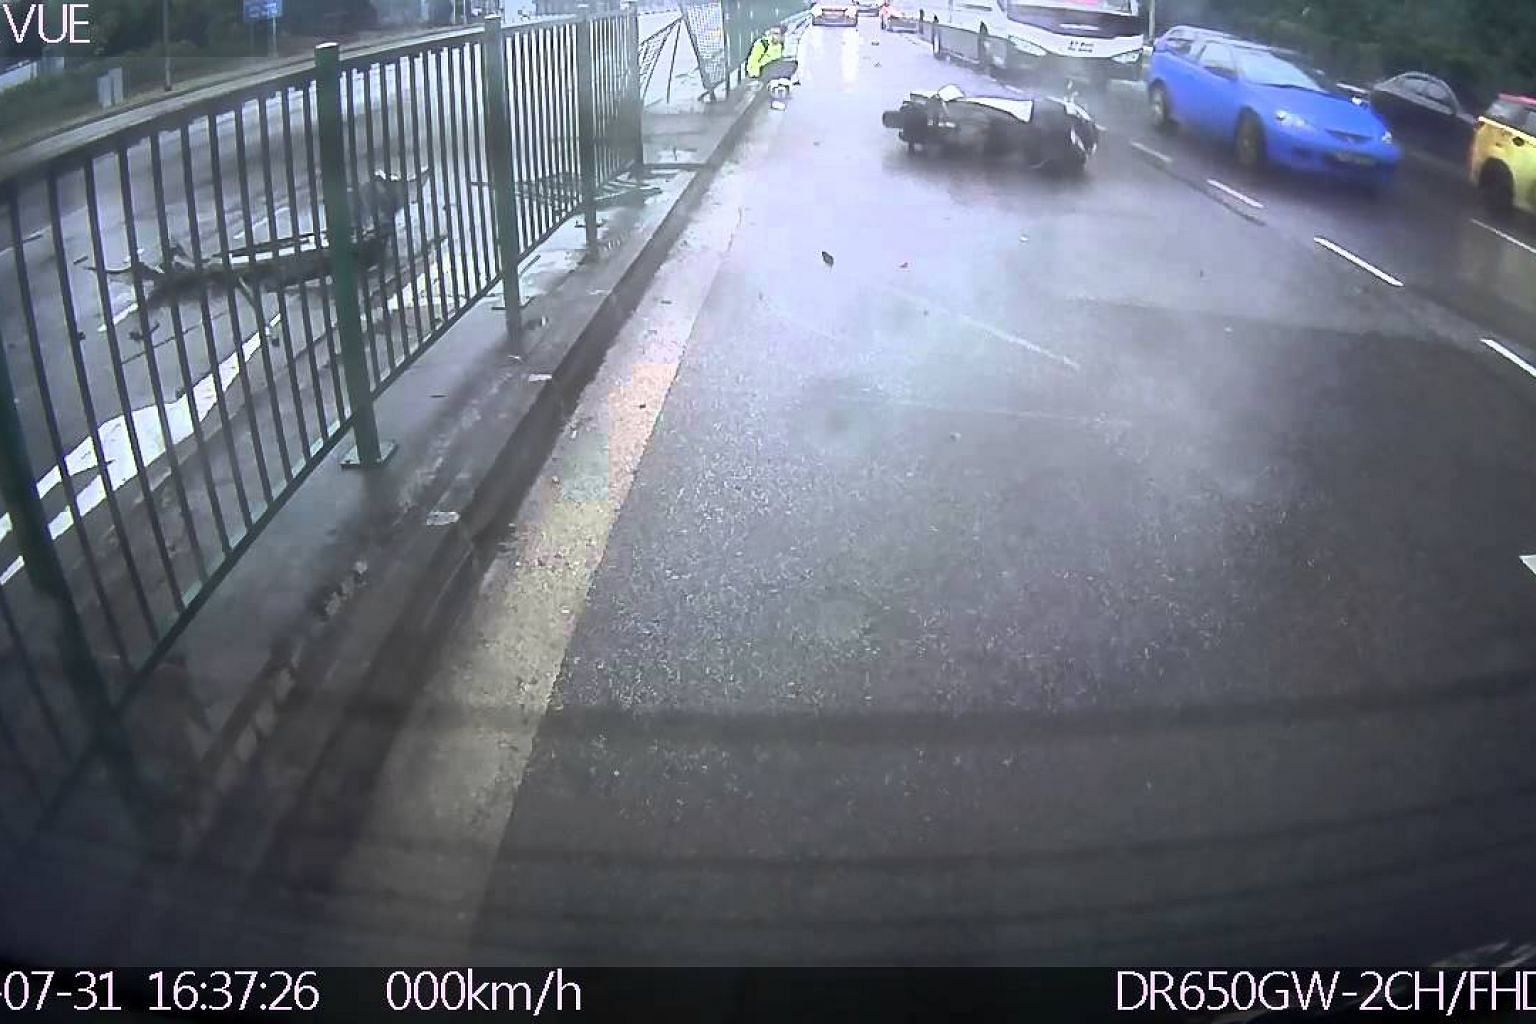 [Hit&Run Accident] Jurong Town Hall Road 31/07/2015 - Part 1